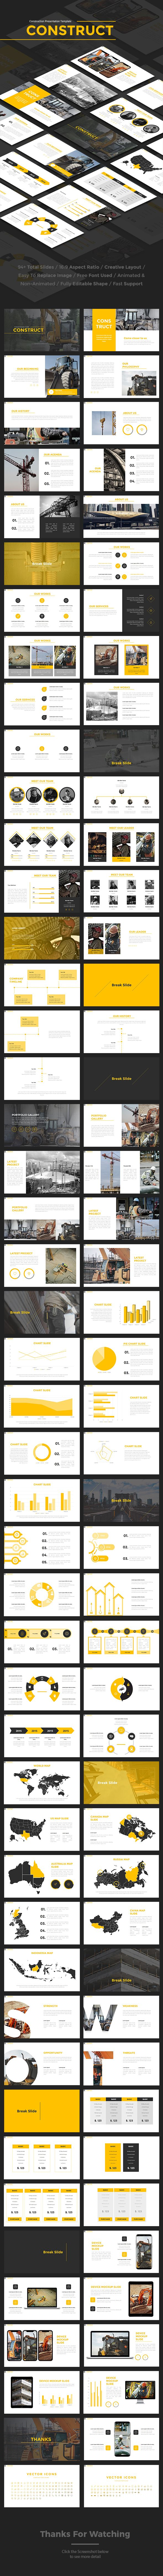 Construct construction powerpoint template business powerpoint construct construction powerpoint template business powerpoint templates toneelgroepblik Choice Image